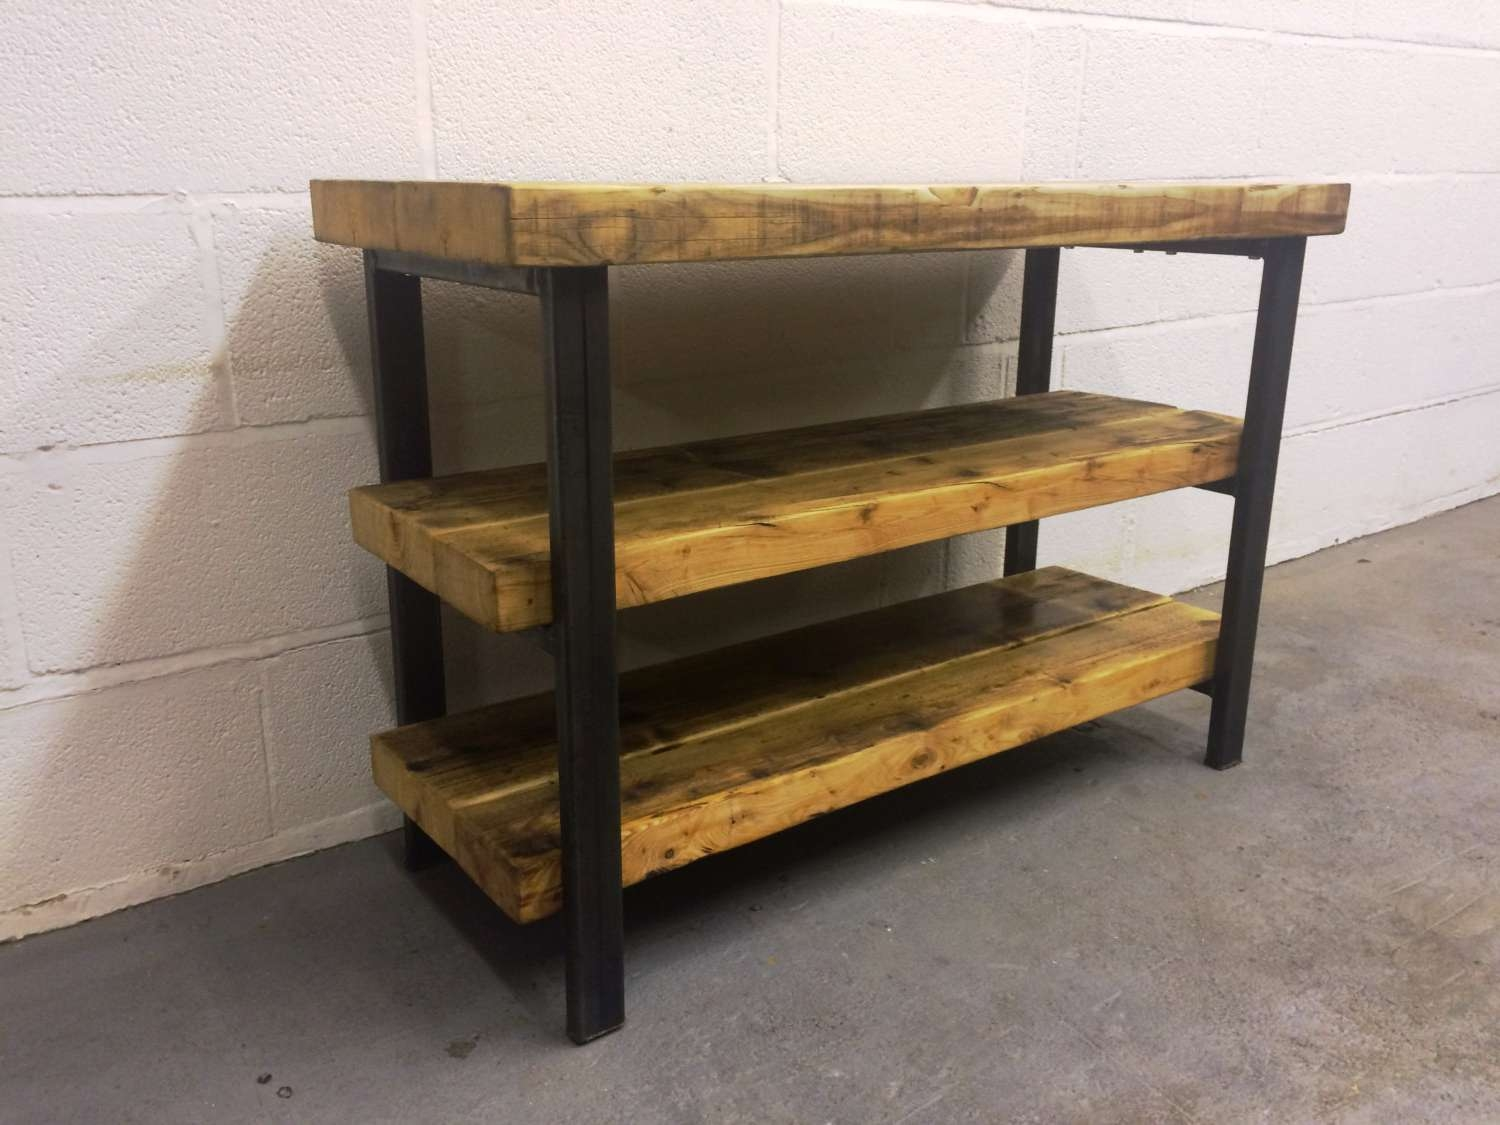 Industrial Chic Reclaimed Tv Stand Media Centre Coffee Table Inside Wood And Metal Tv Stands (Gallery 1 of 15)